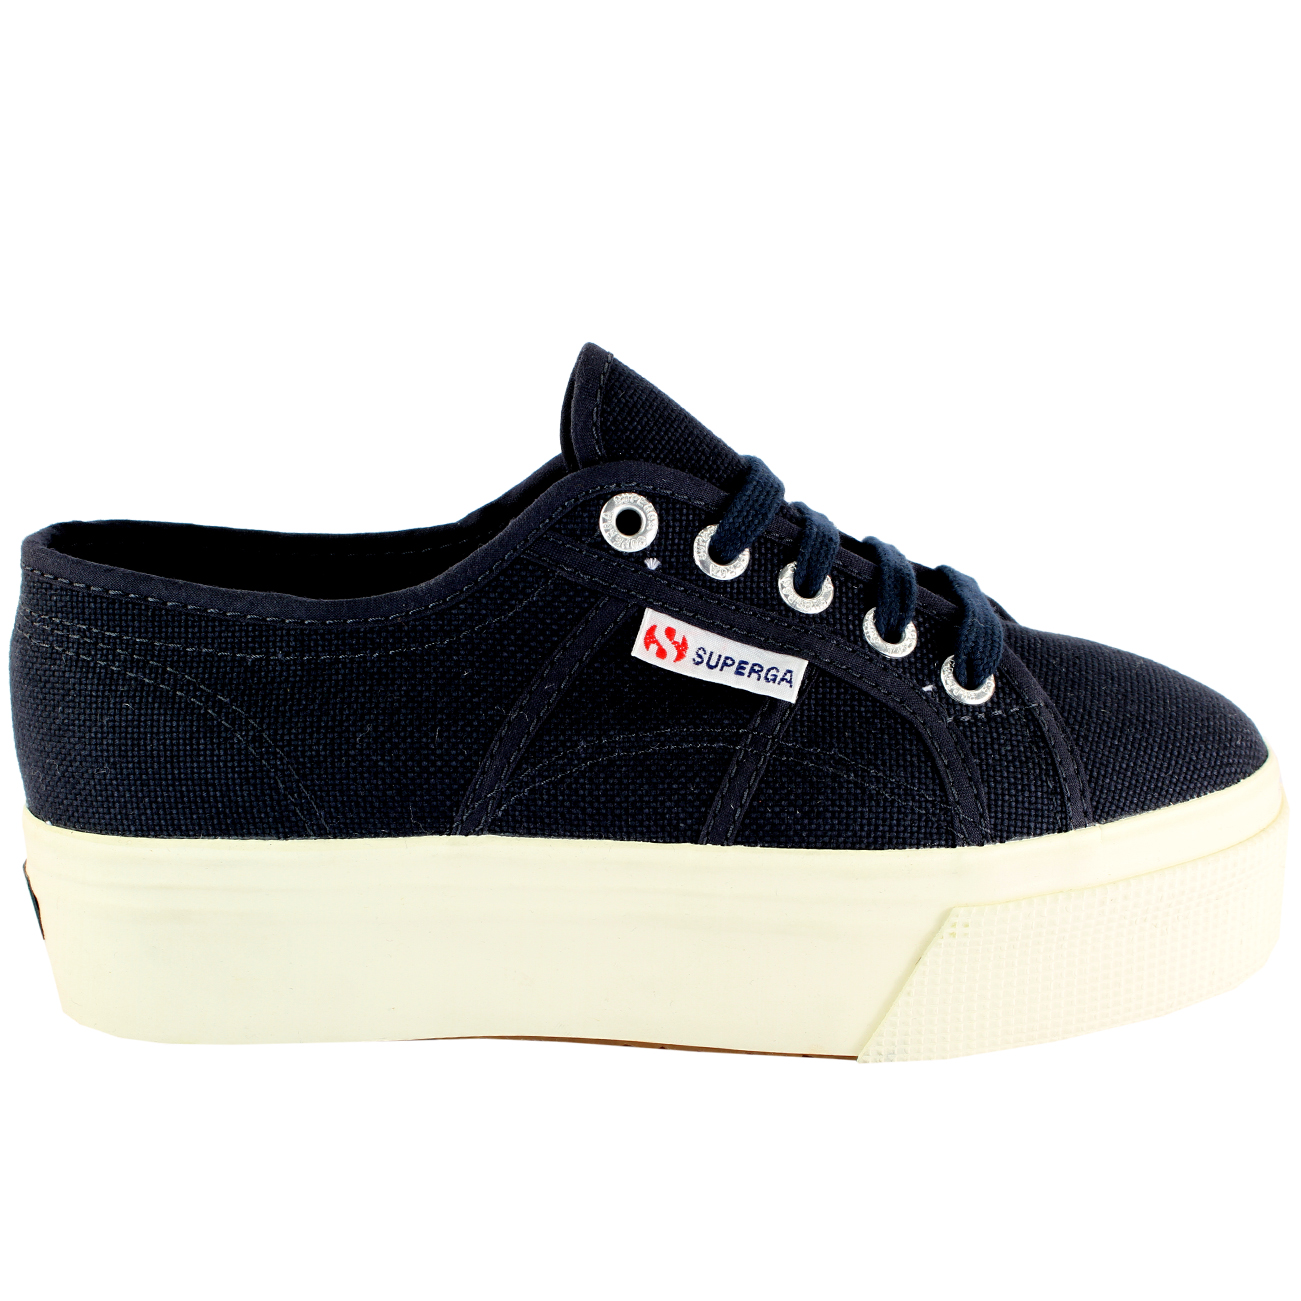 womens flatform superga canvas chunky sole low cut sneakers uk all sizes ebay. Black Bedroom Furniture Sets. Home Design Ideas